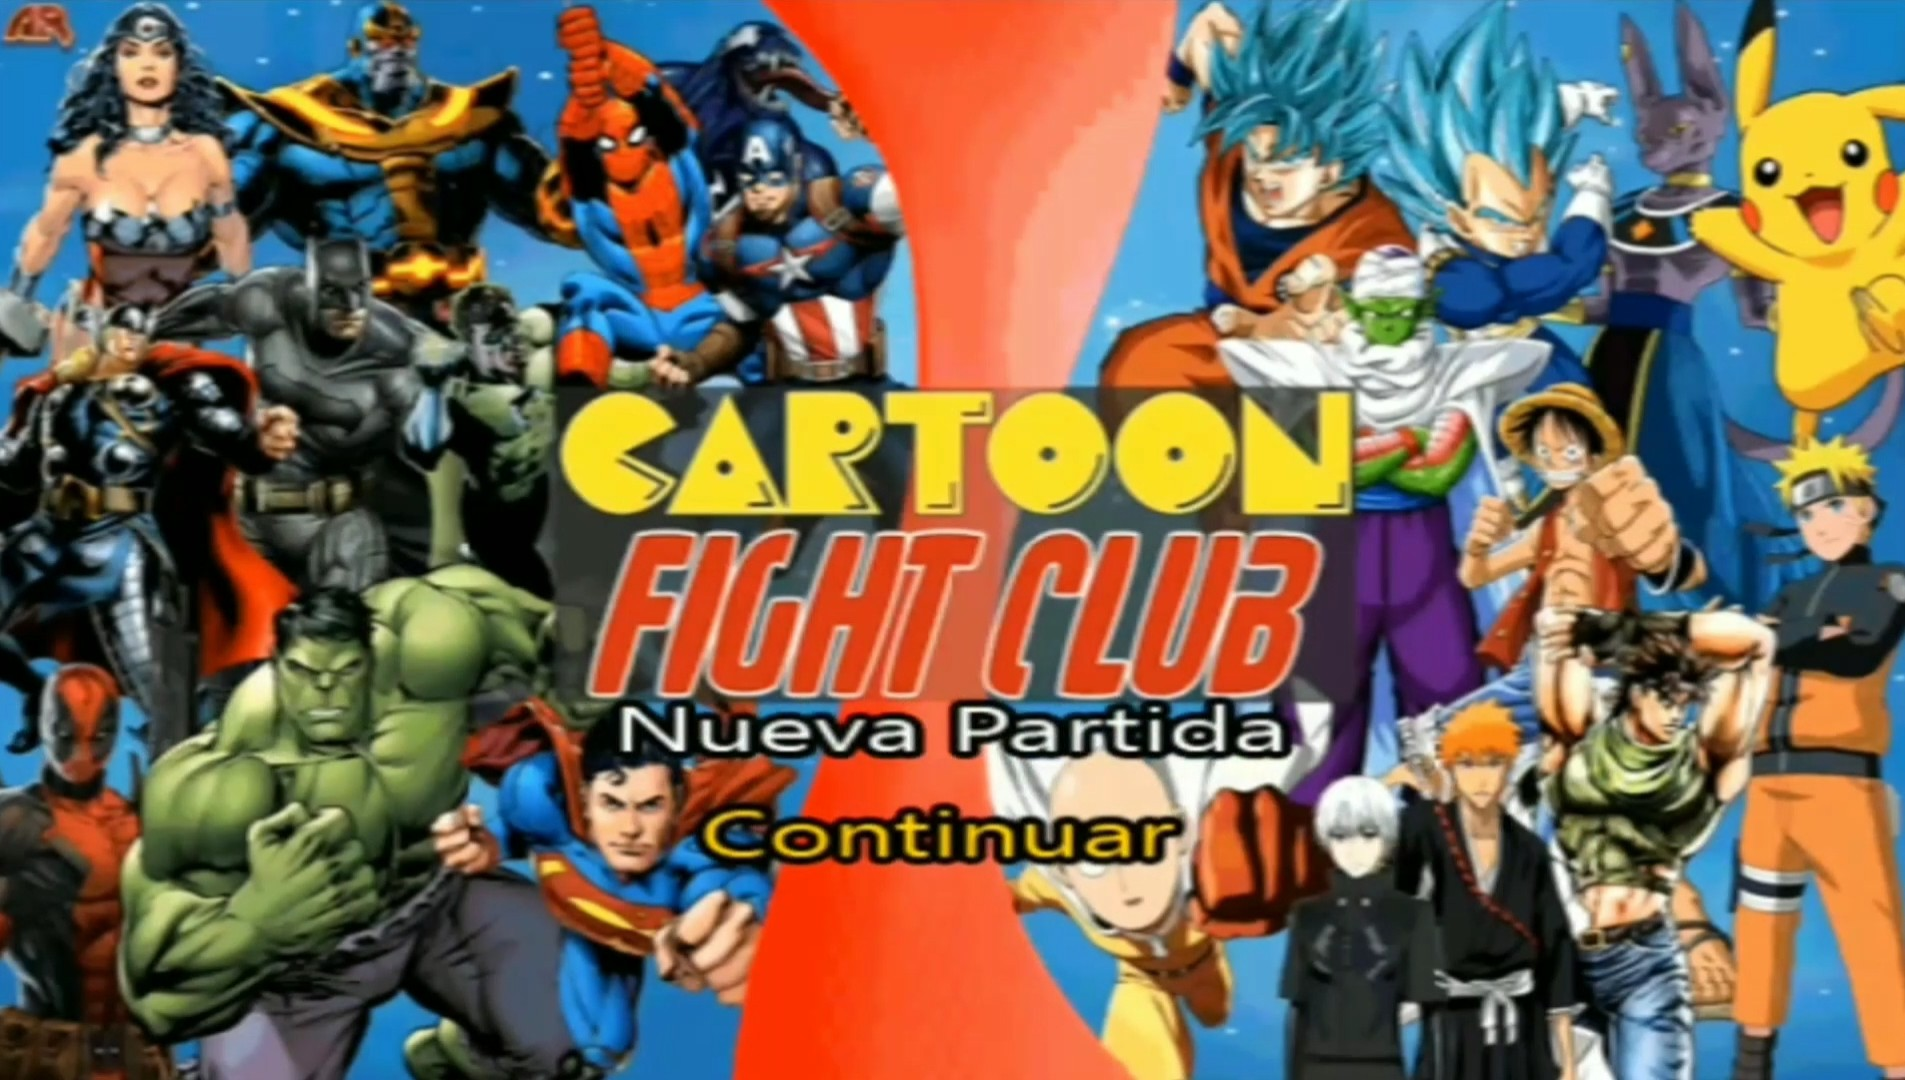 DBZ Cartoon Fight Club BT3 PS2 MOD Download